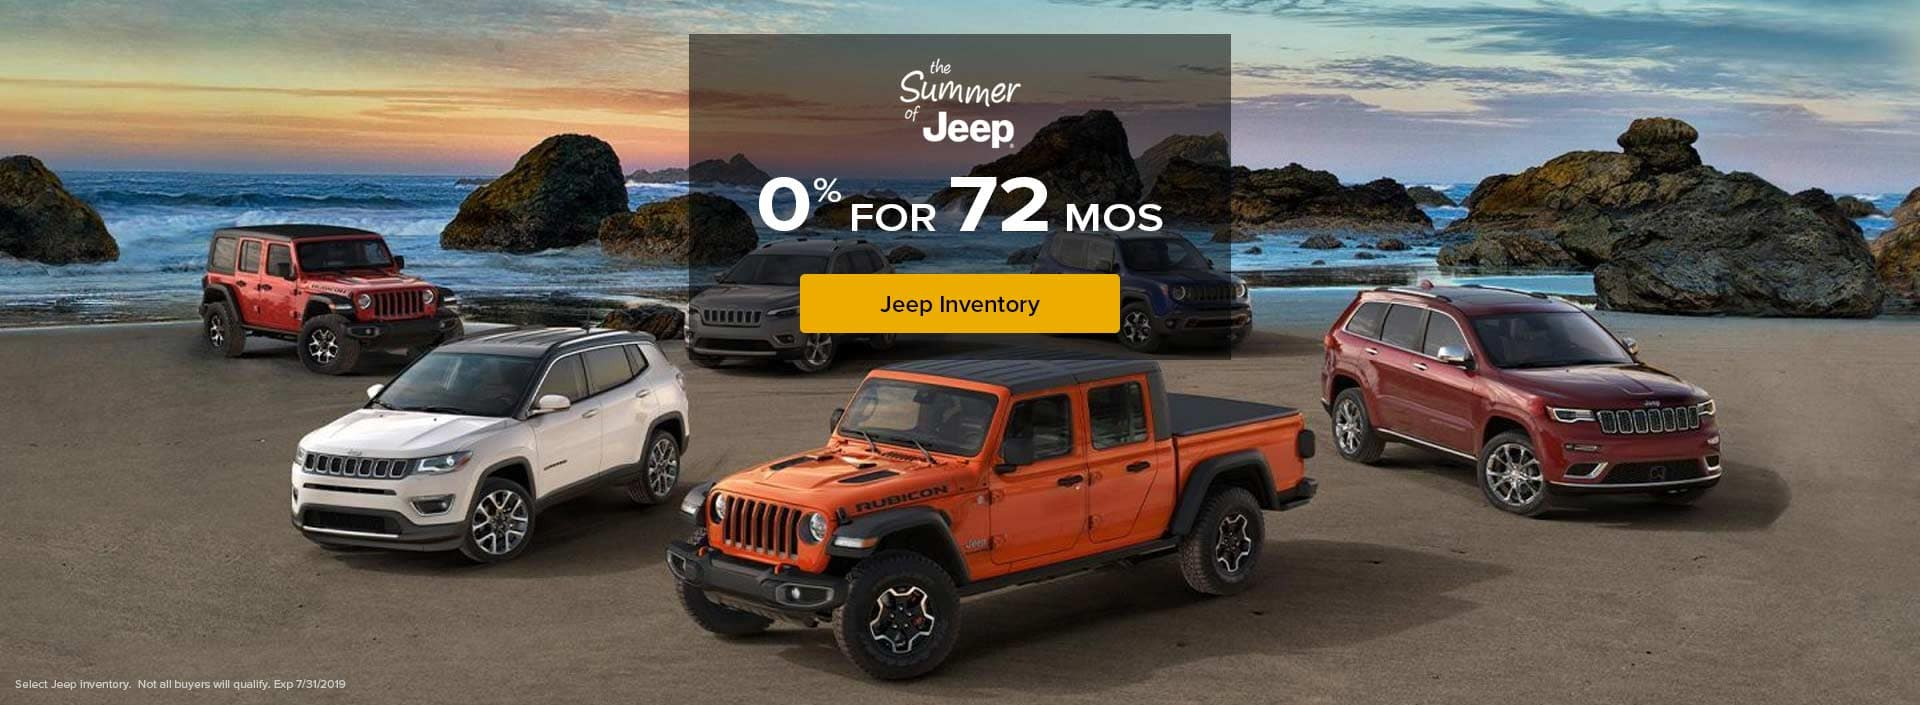 Jeep 0% for 72 mo